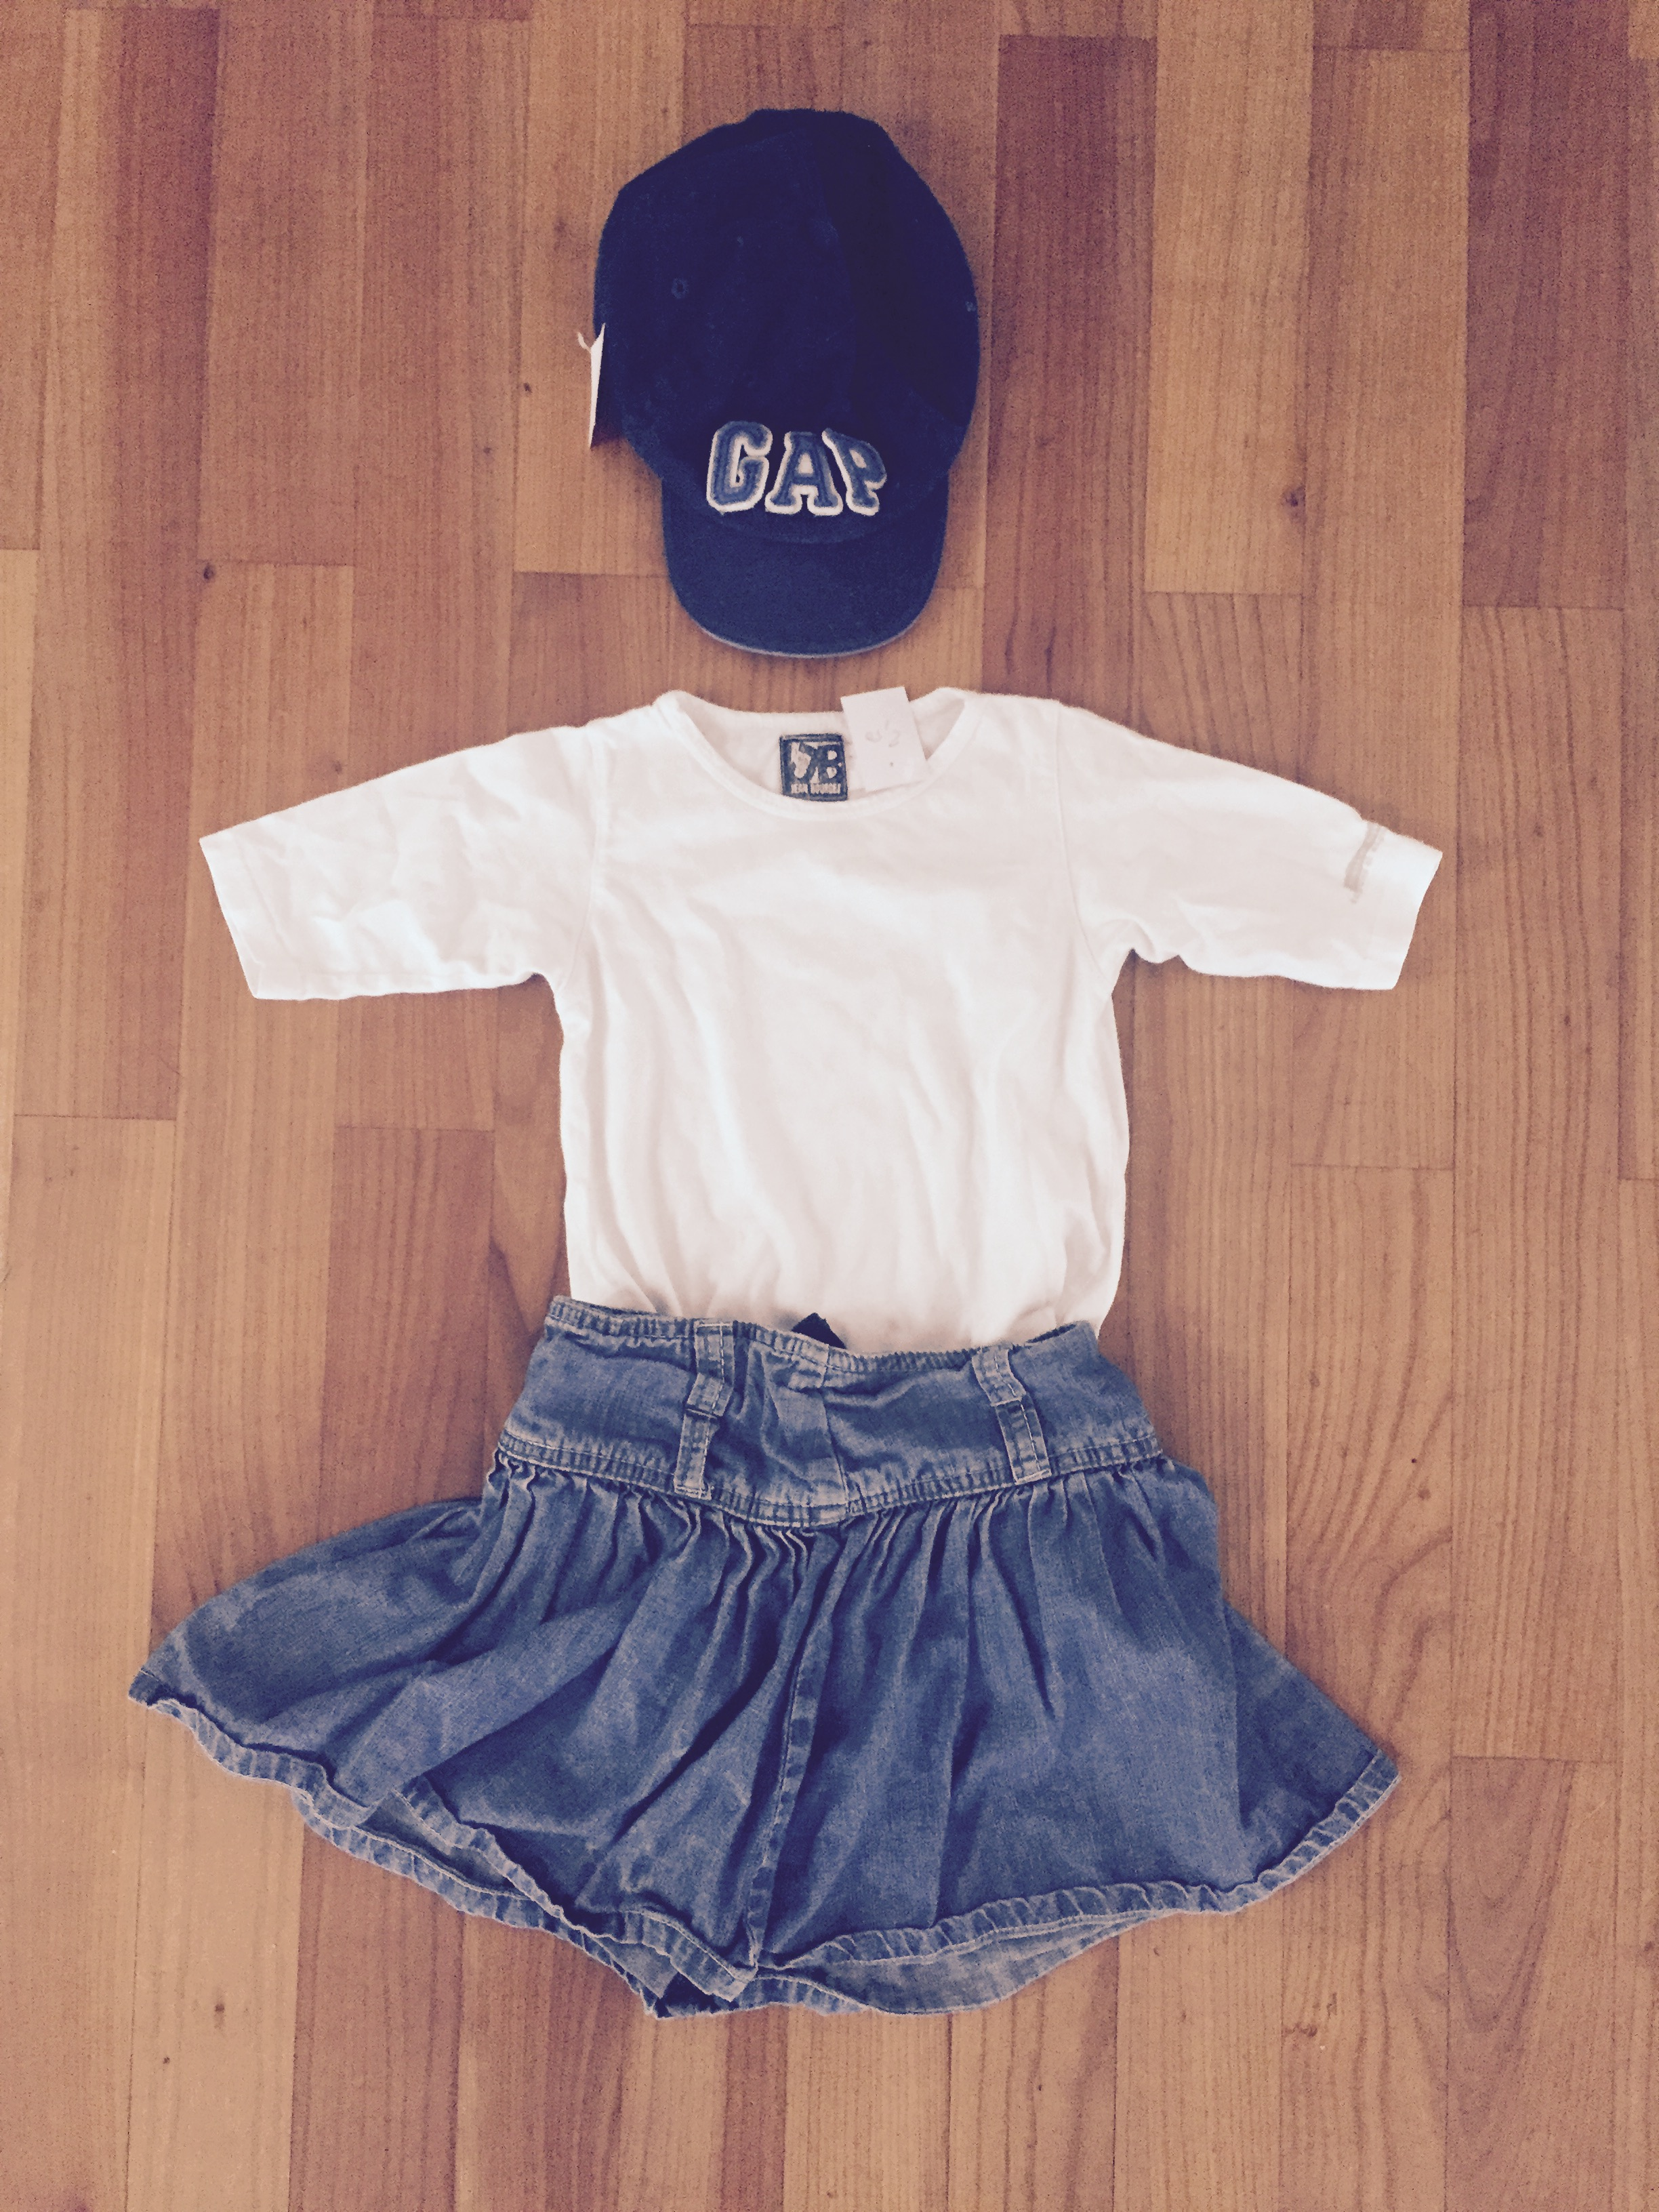 Gap Basecap und Jeansrock - Low Budget Summer Outfit bei Mummy Mag